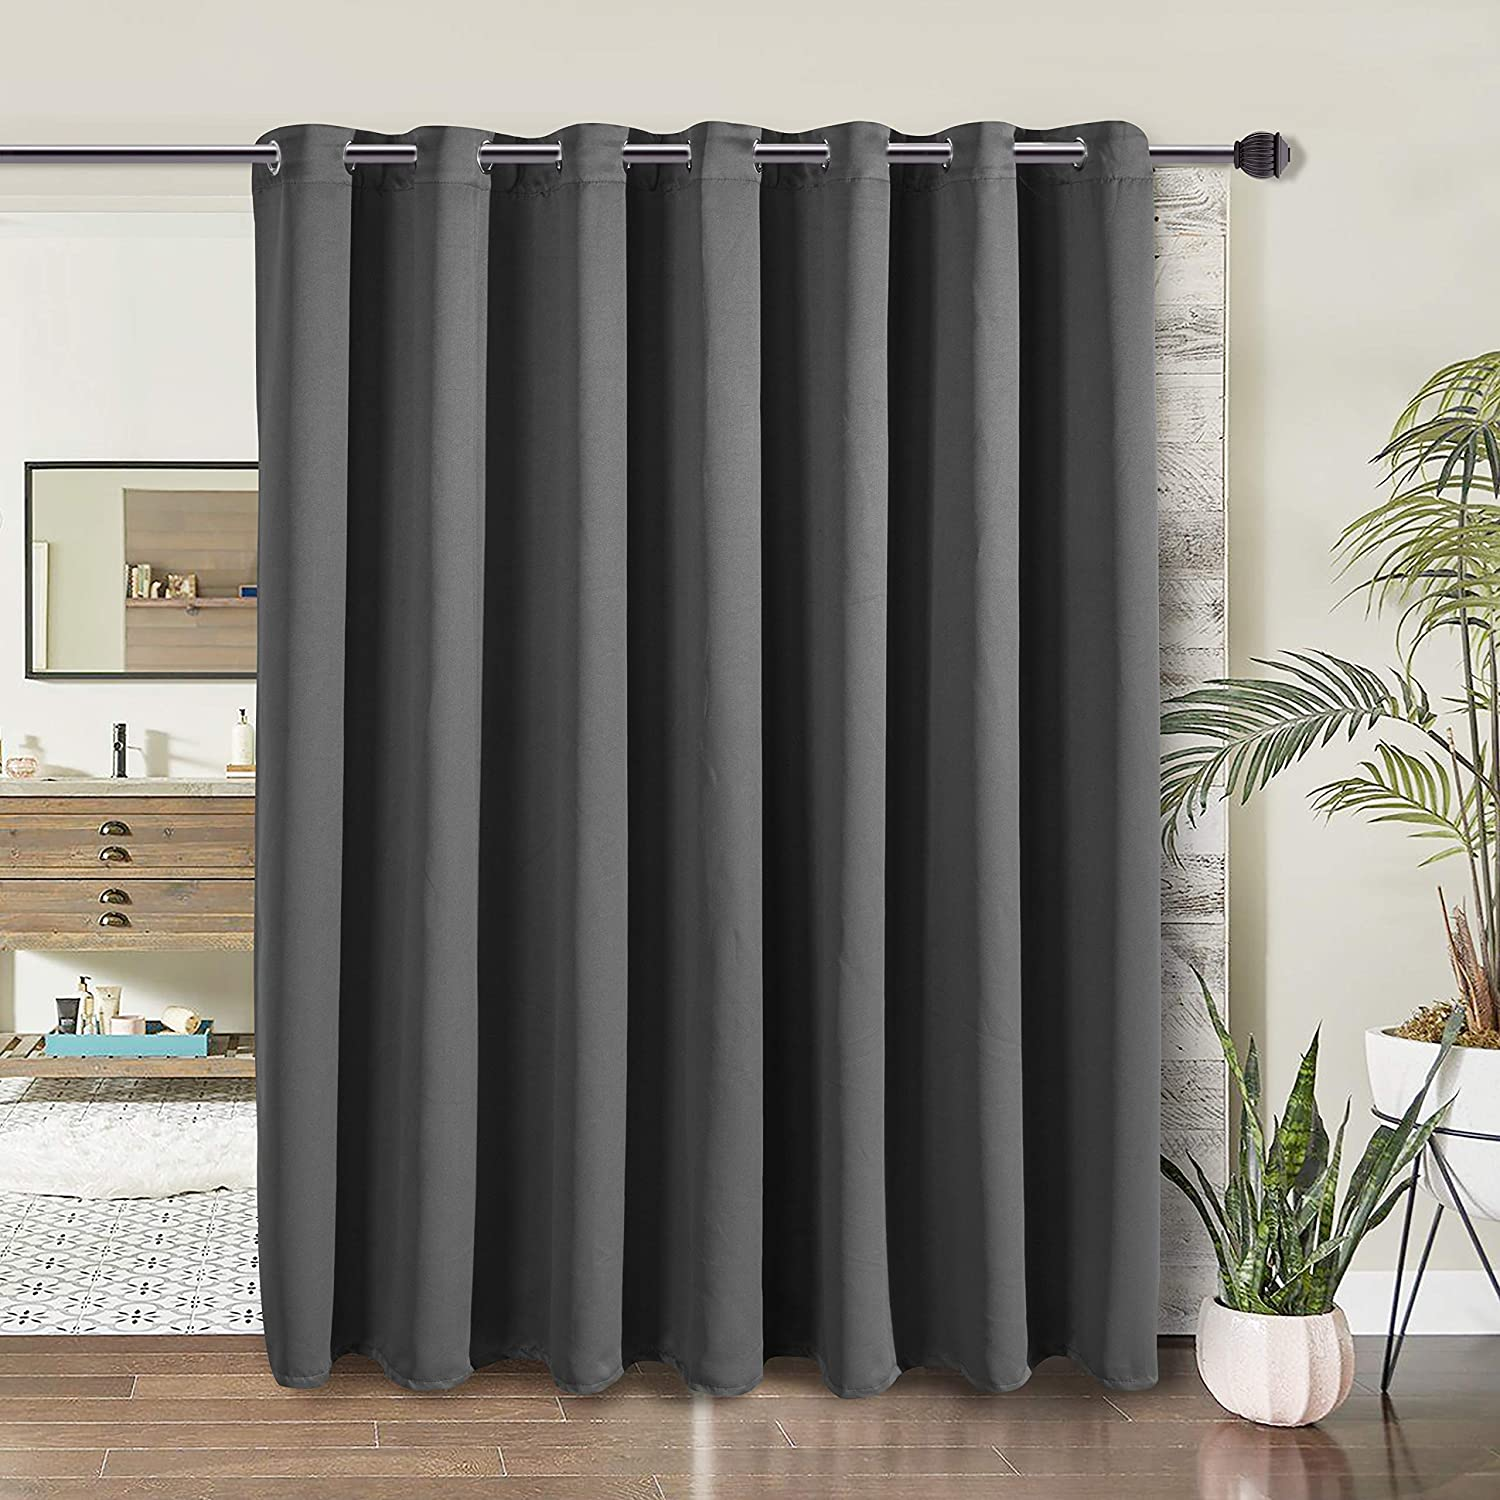 WONTEX Room Divider Curtain - Privacy Blackout Curtains for Bedroom Partition, Living Room and Shared Office, Thermal Insulated Grommet Curtain Panel for Sliding Door, 8.3ft Wide x 7ft Long, Grey